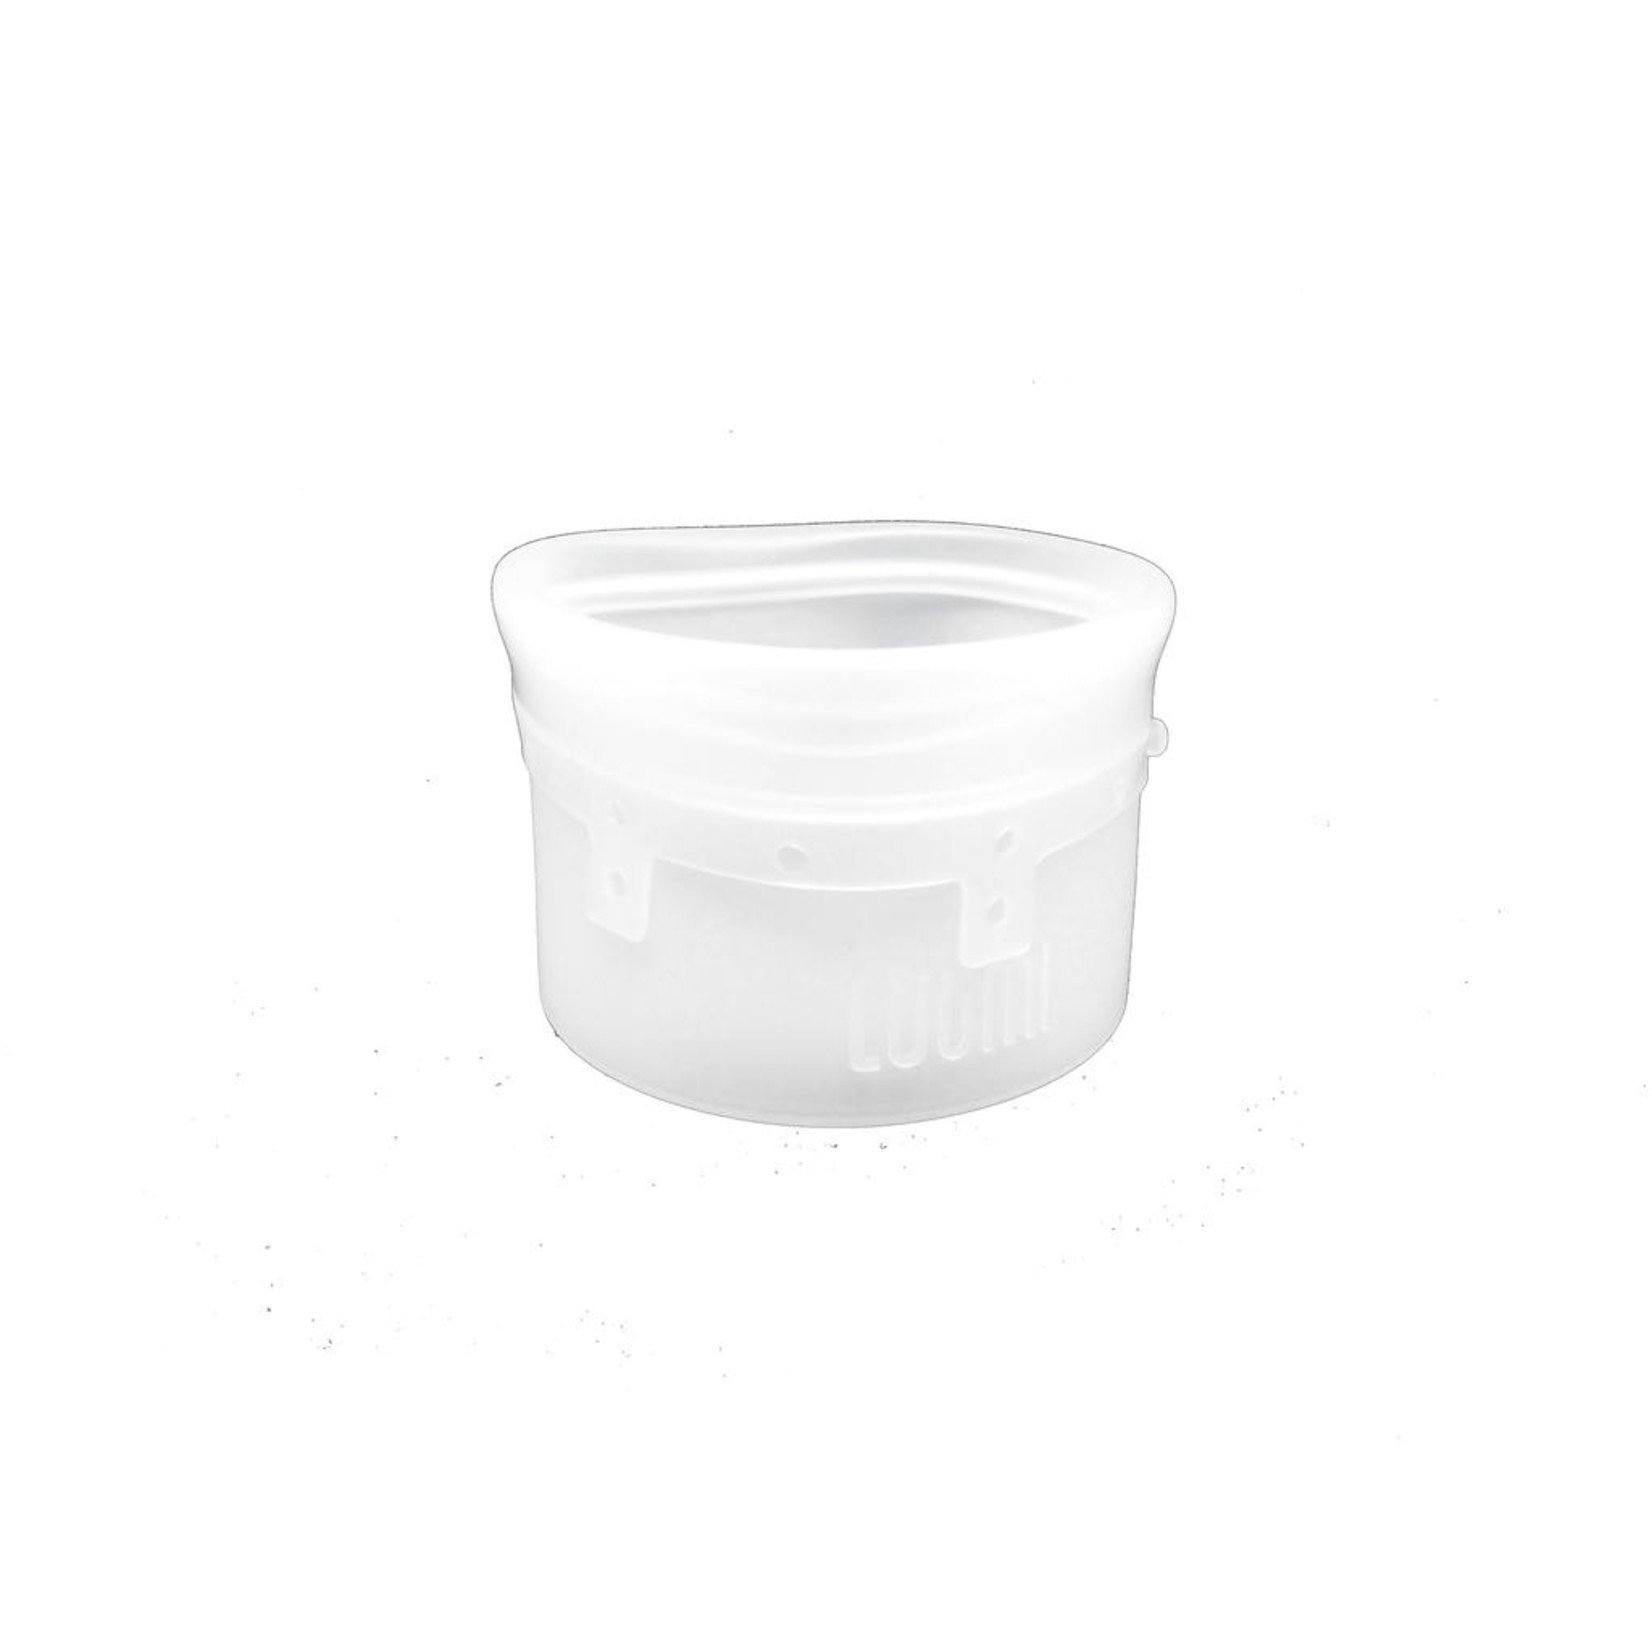 SMALL SILICONE BAG - CLEAR